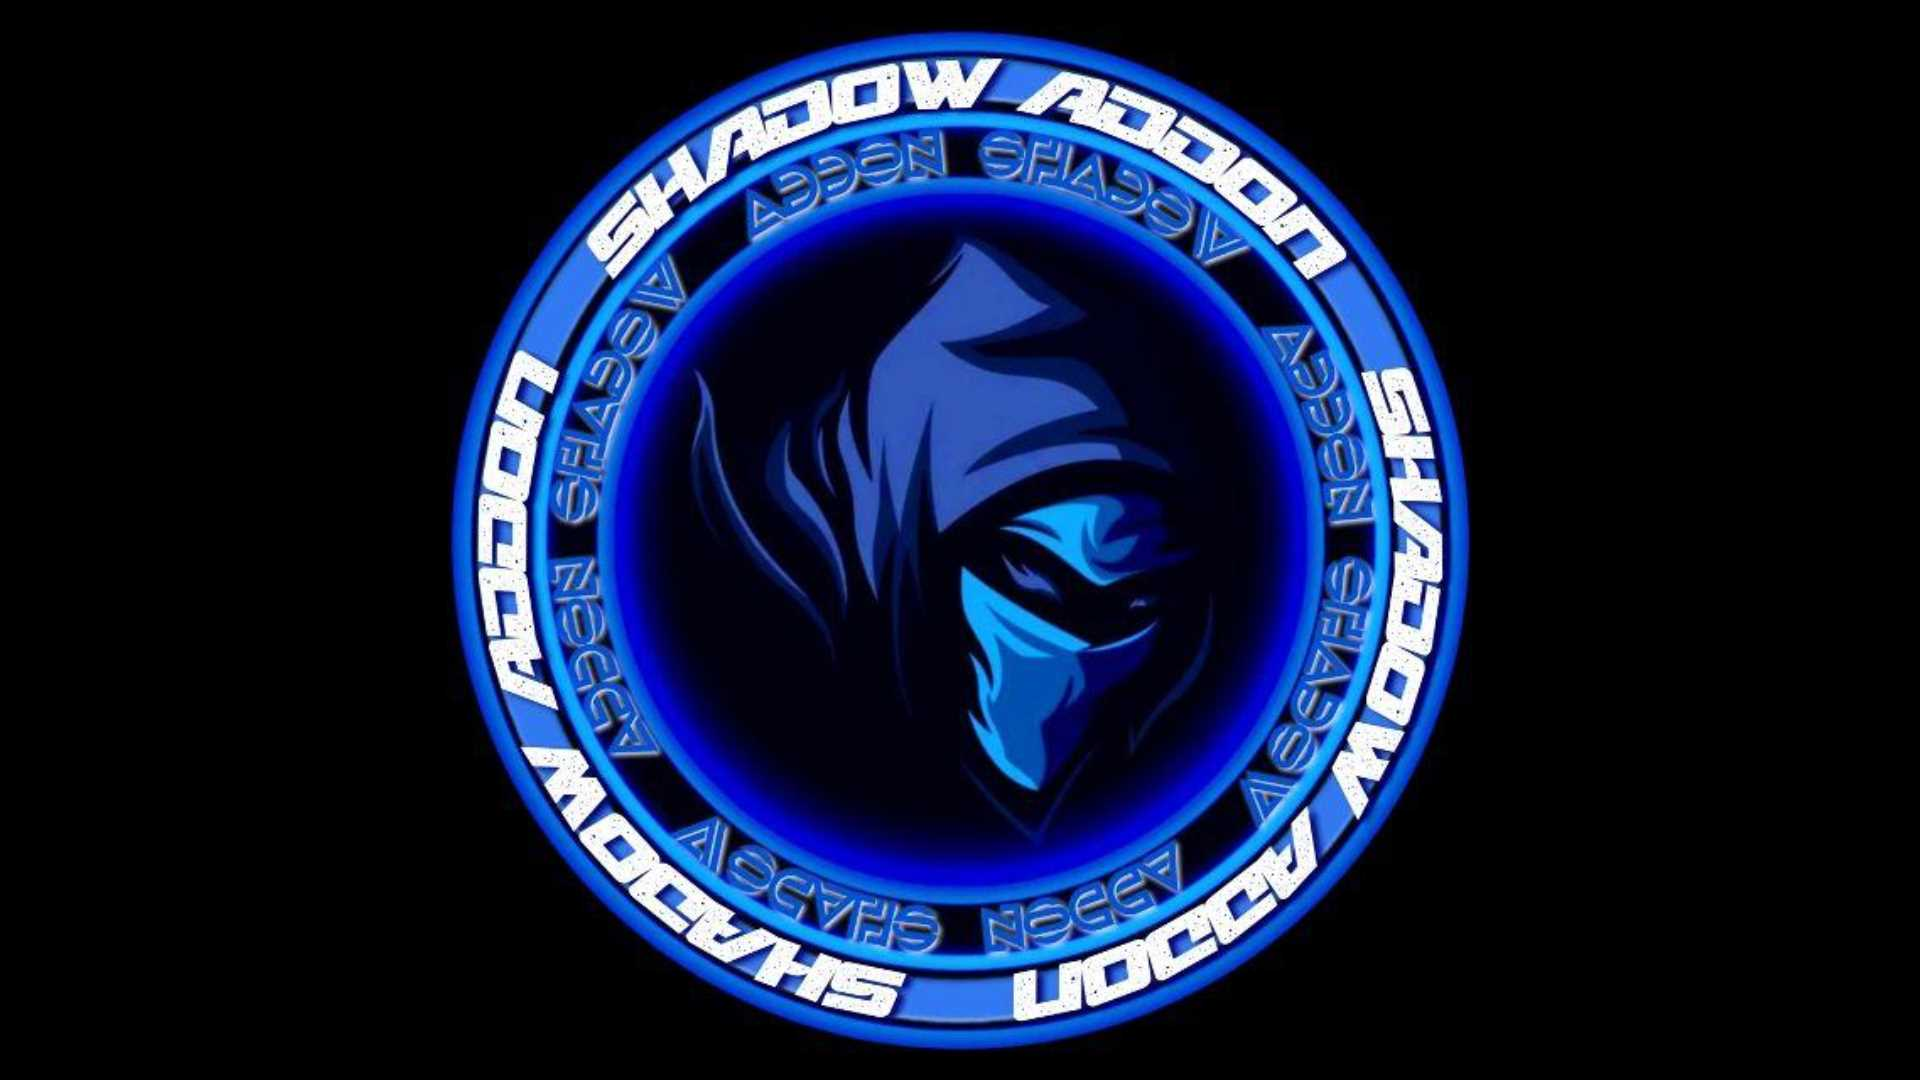 How to install SHADOW Add-on for Kodi 17 Krypton or 18 Leia